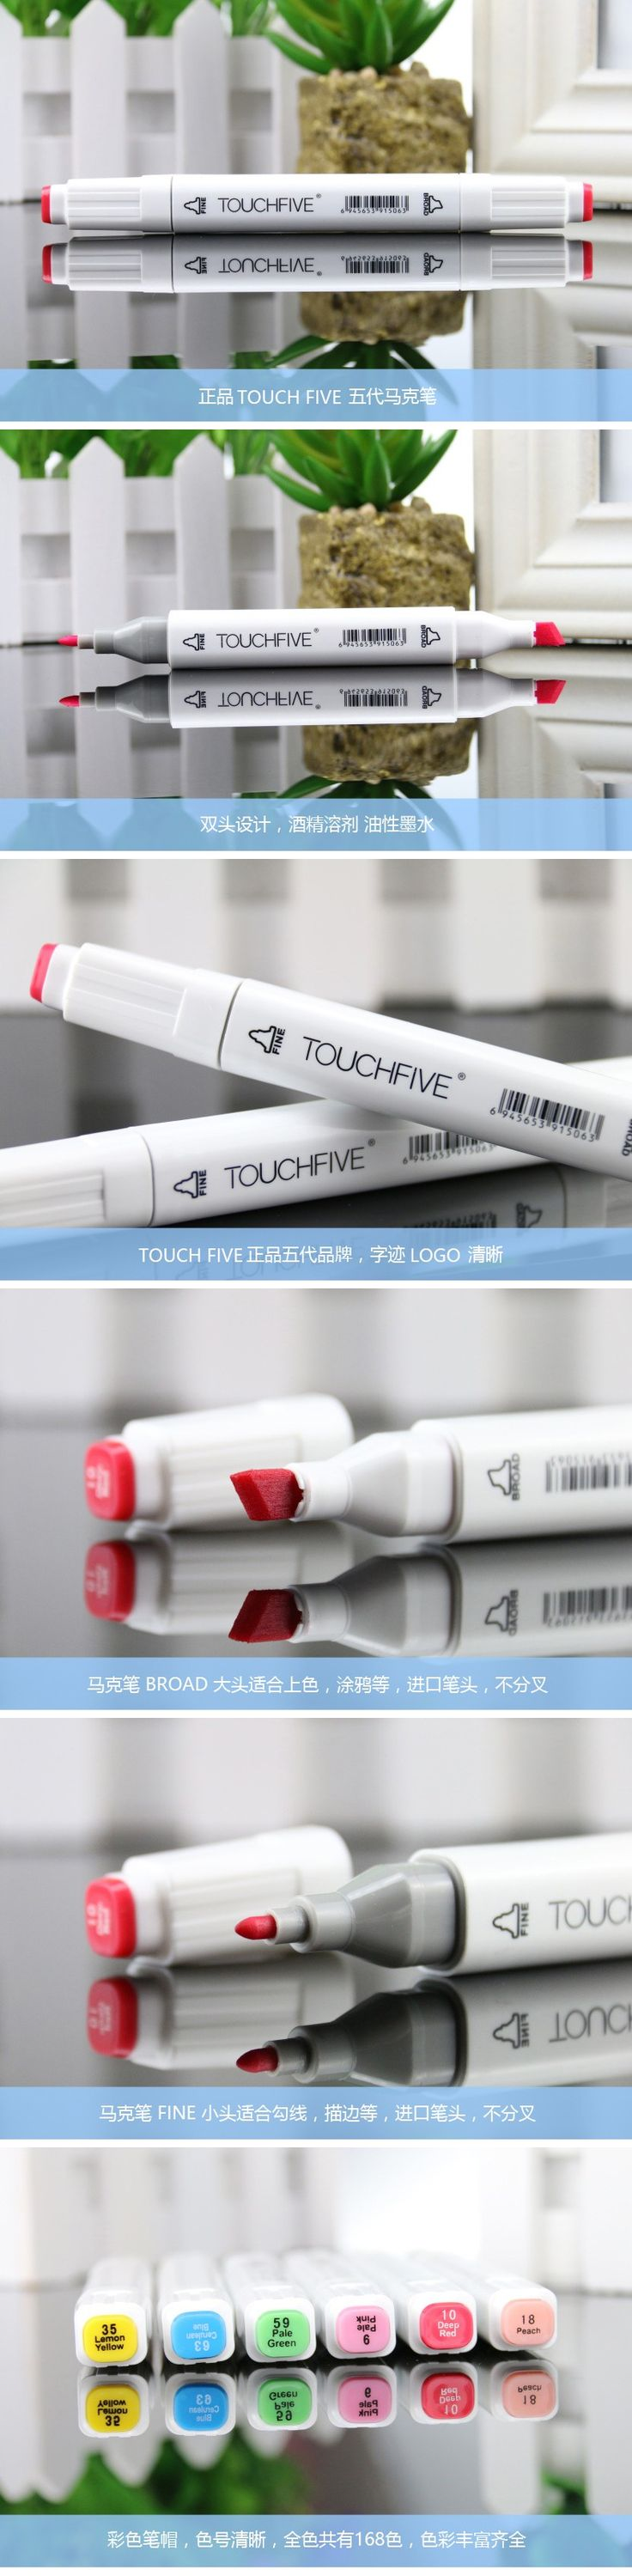 TOUCHFIVE Art Sketch Marker Pen Fine/Broad Double tips For Artist Manga Graphic // Follow us on:  FB: @theworldofmanga888  Pinterest : @world_of_manga  IG : @wom_worldofmanga  Twitter: @tworldofmanga    #animegirl #naruto #japan #cosplay